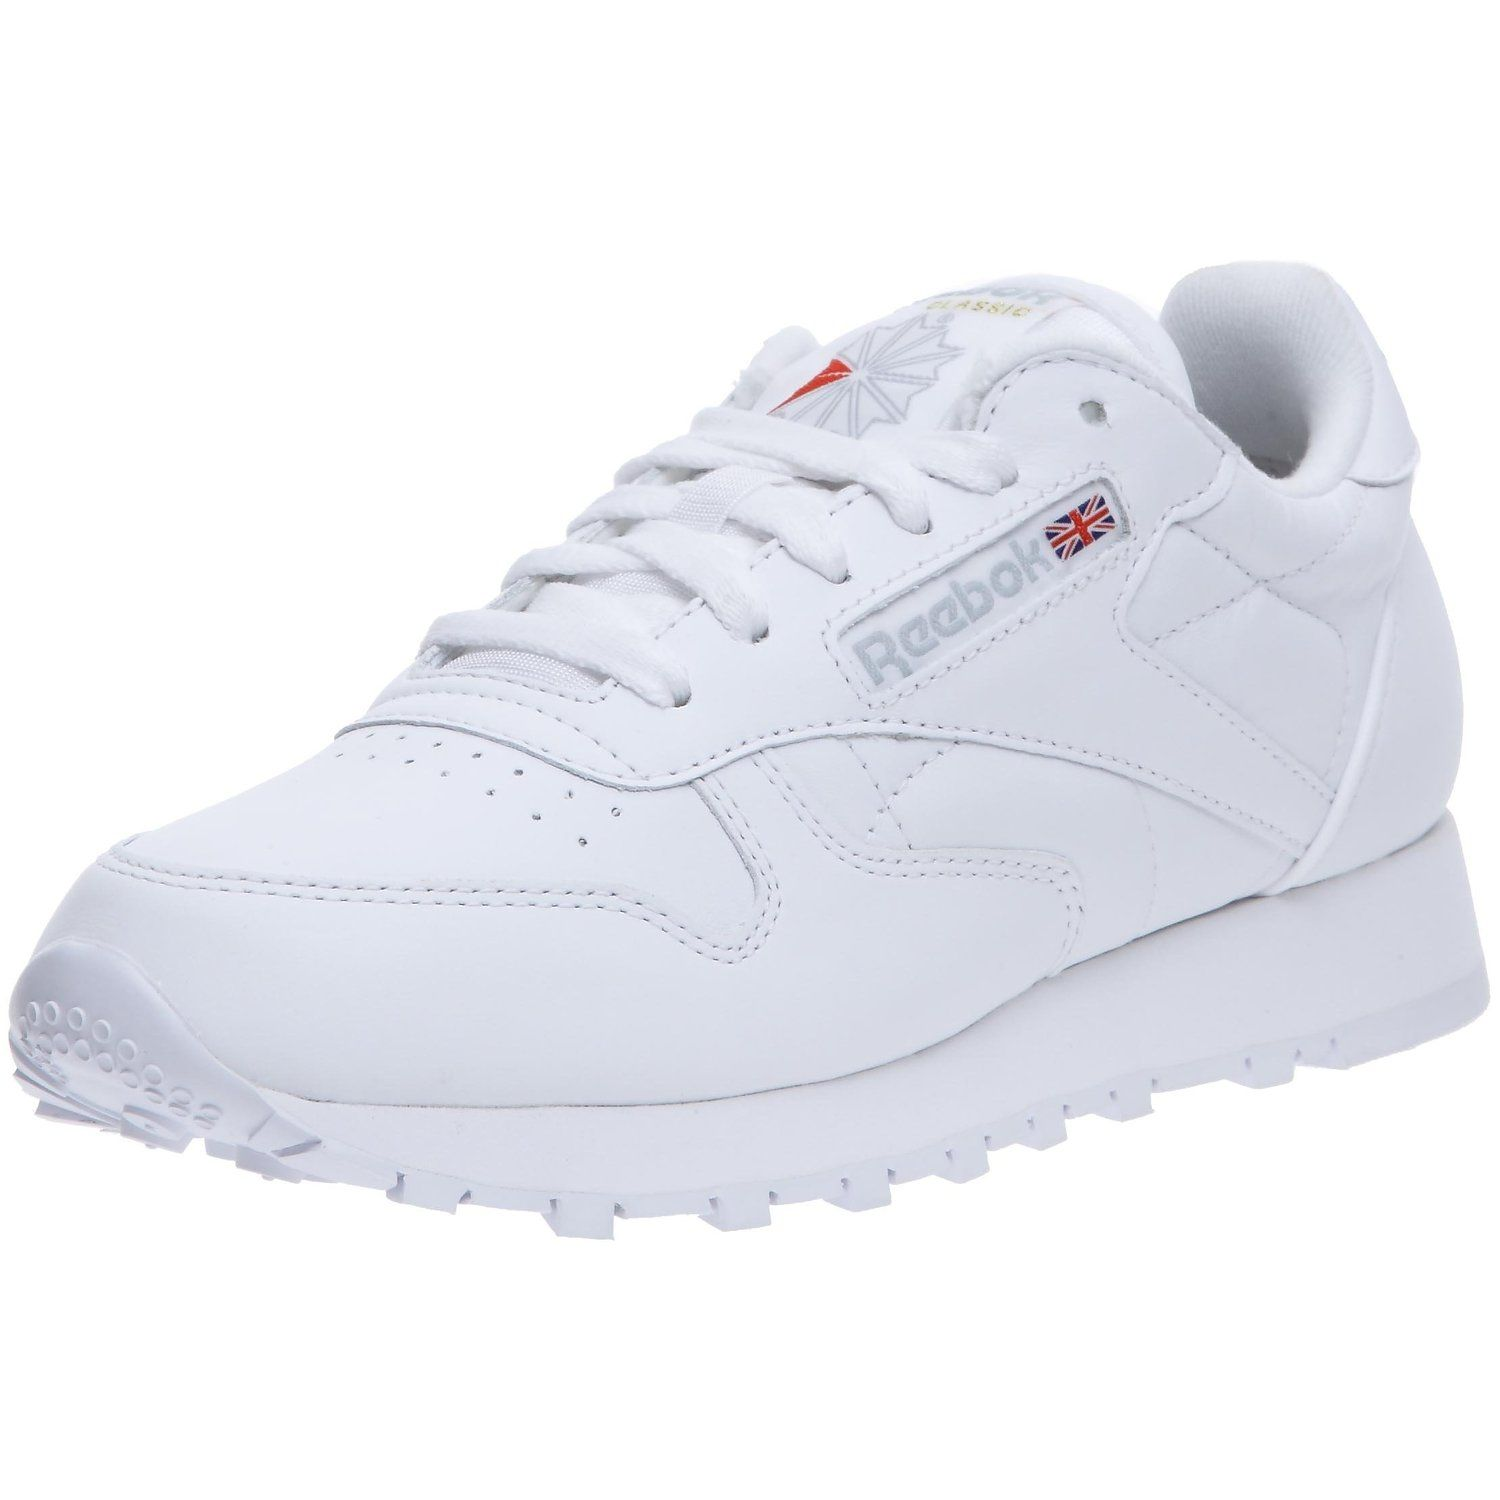 huge selection of 09fcd cbc3a Reebok Classic Damen Sneakers: Reebok: Amazon.de: Schuhe ...